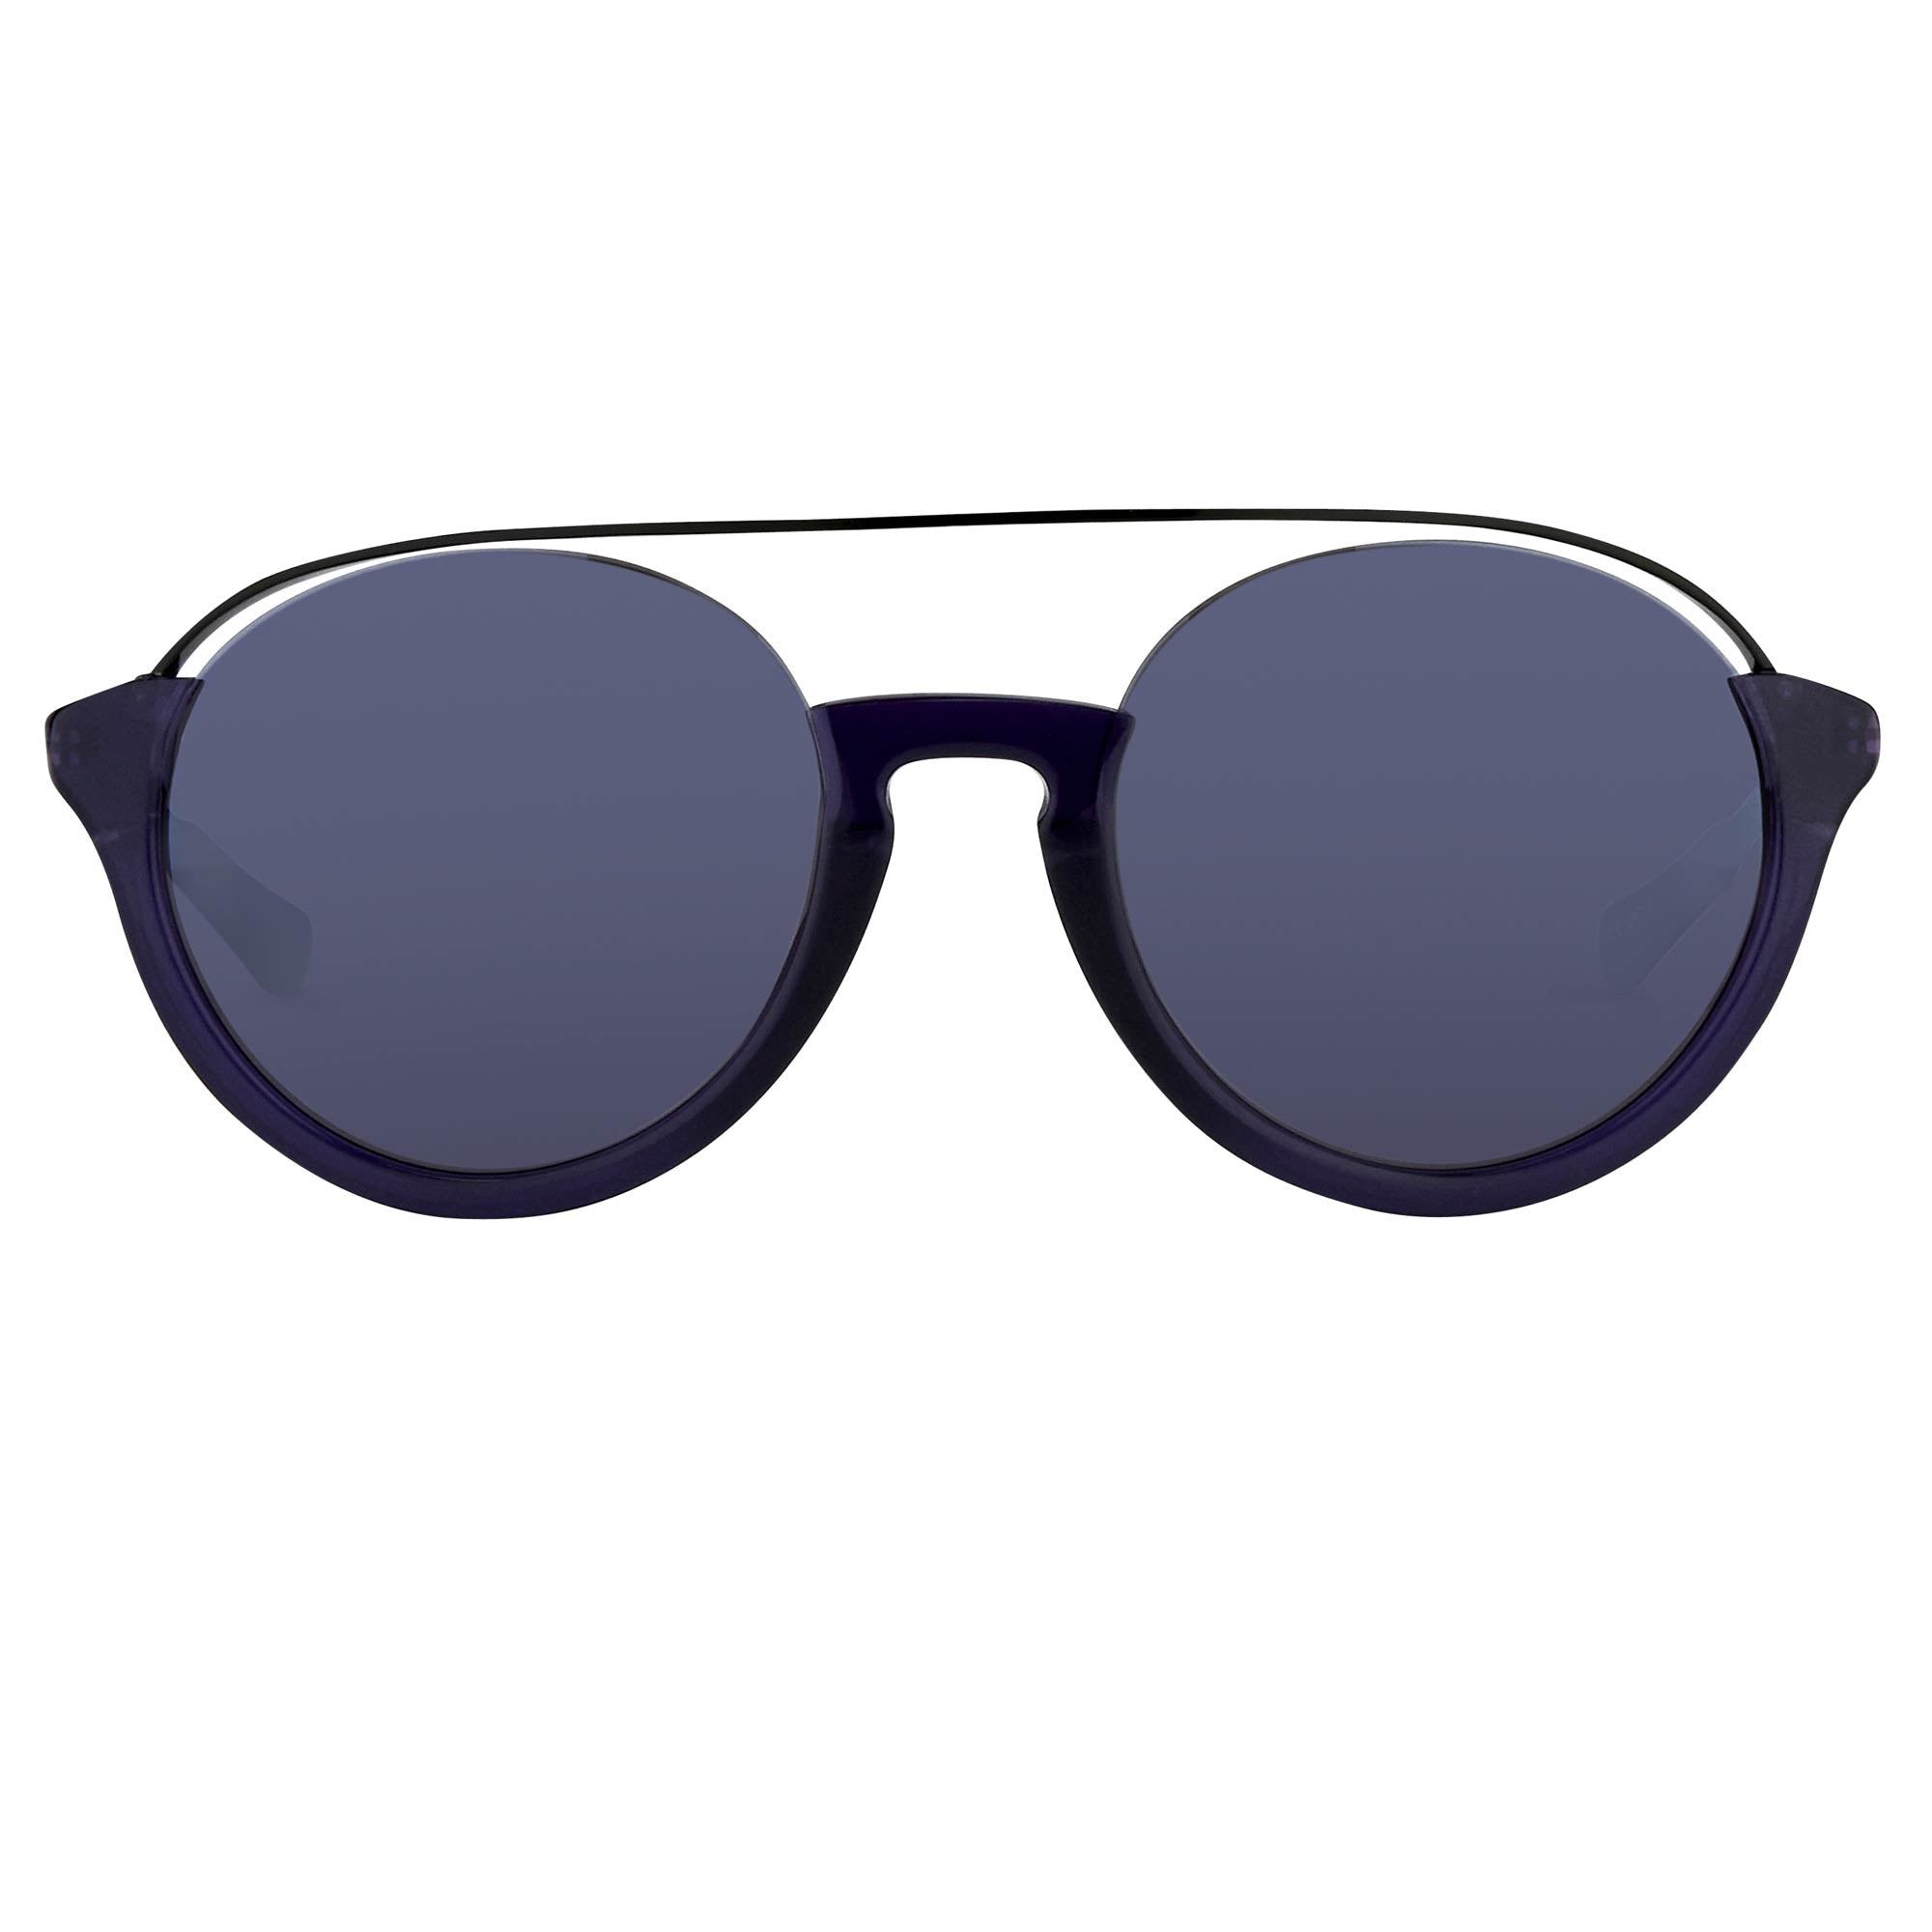 Kris Van Assche Unisex Sunglasses with Titanium Double Bridge Oval Navy Black and Blue Mirror Lenses Category 3 - KVA83C4SUN - Watches & Crystals